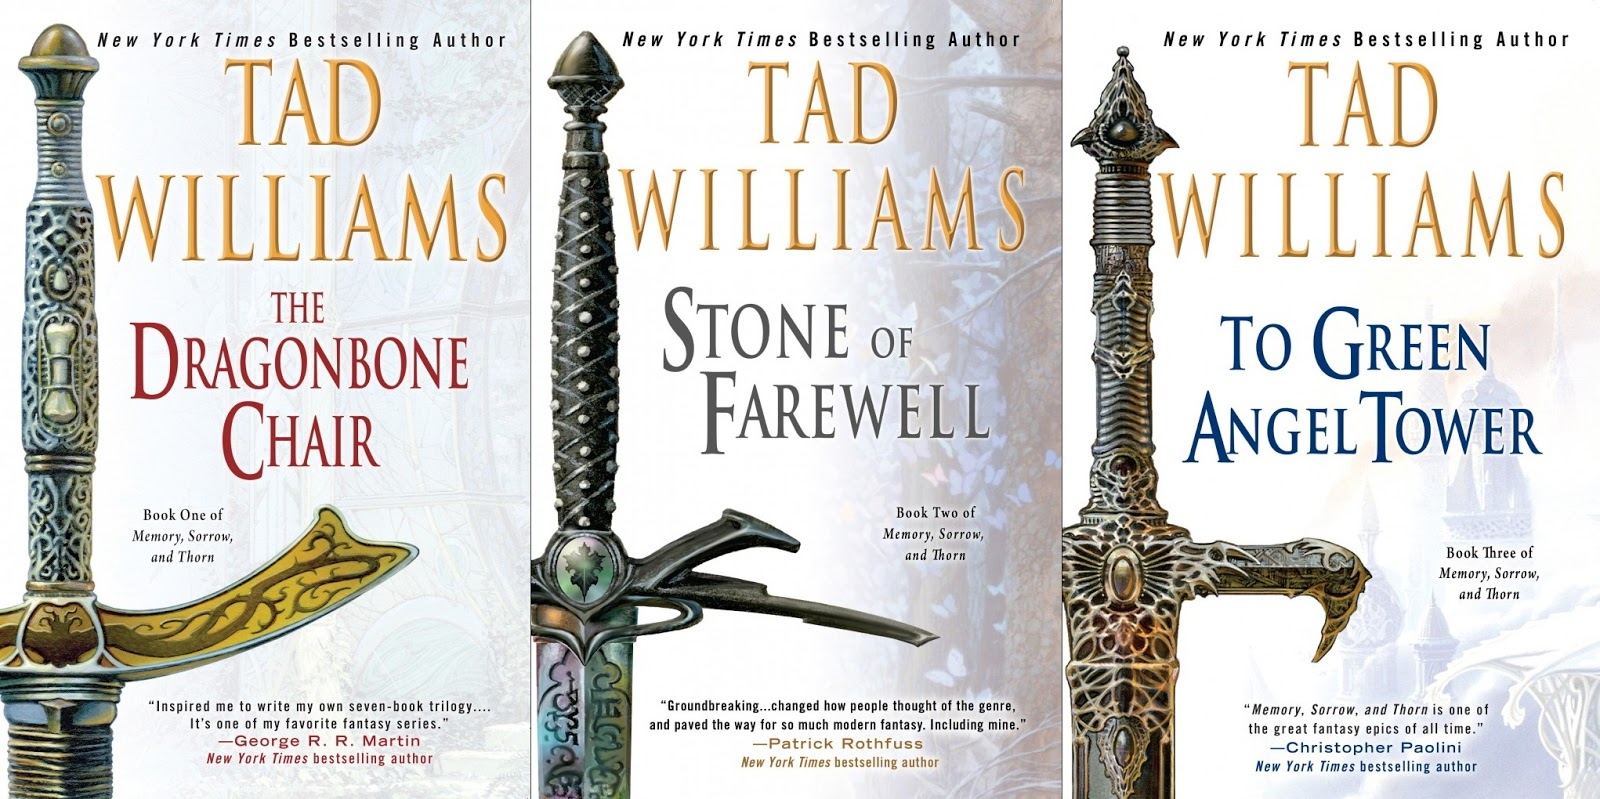 Tad Williams's Classic Memory, Sorrow And Thorn Trilogy Is Being Rejacketed  For A New American Trade Paperback Edition Being Launched Later This Year